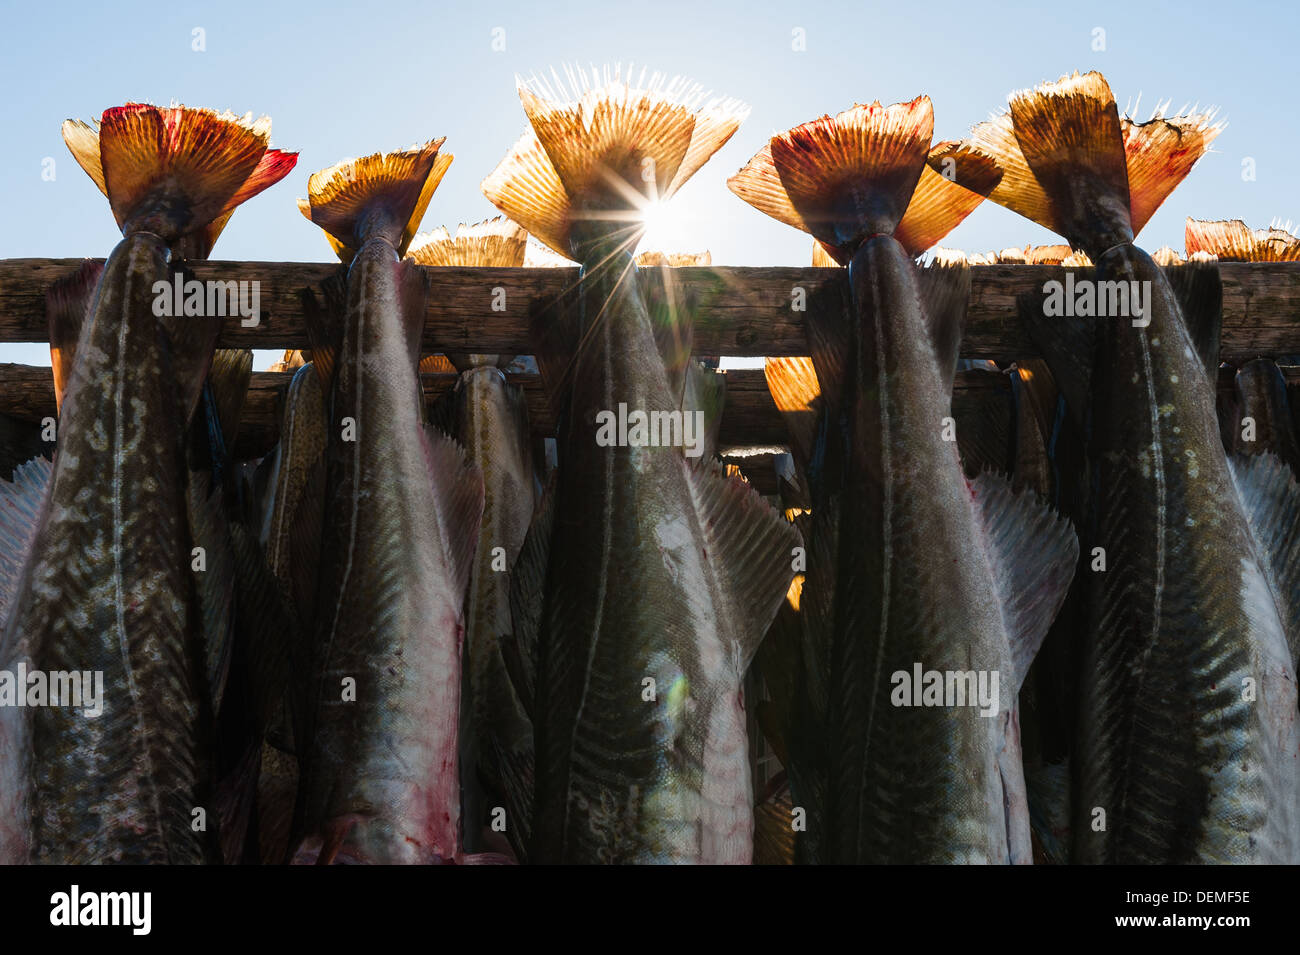 Sun shining through fish hanging up to dry, Norway. - Stock Image